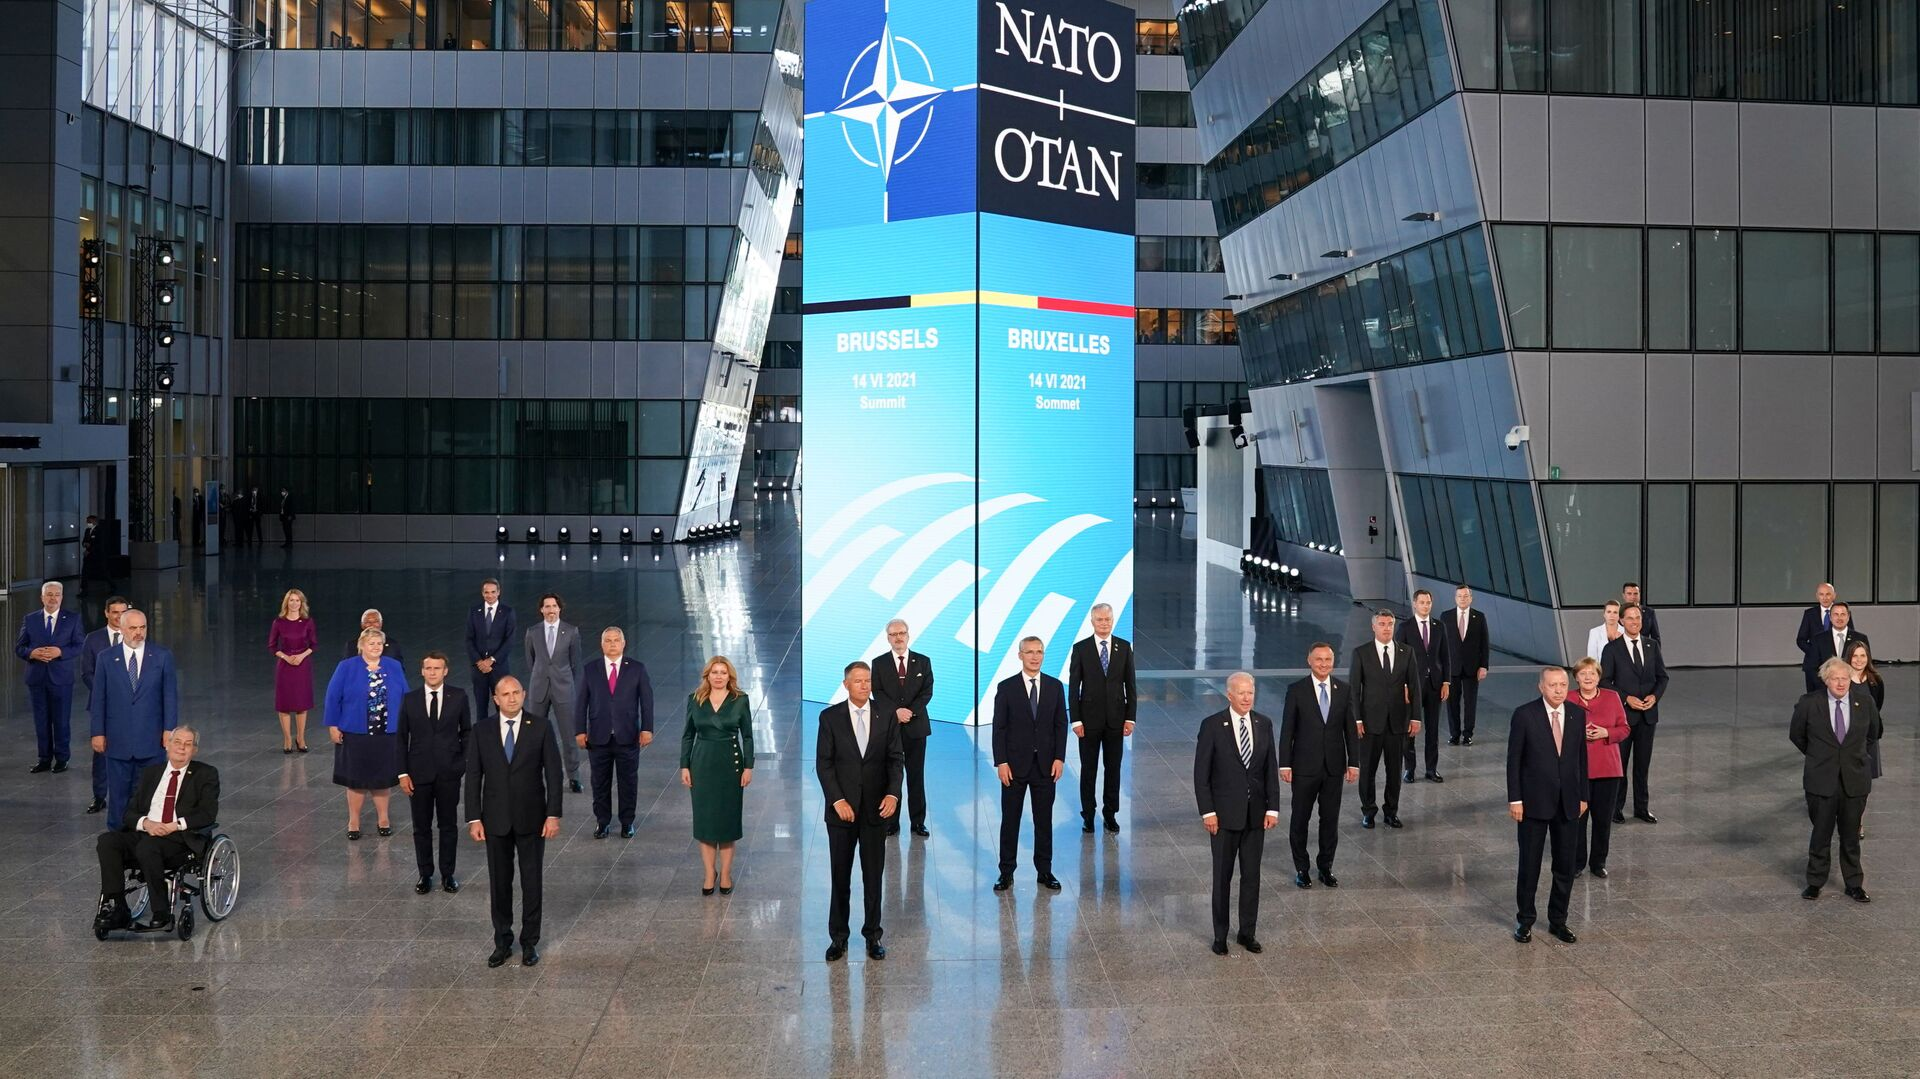 U.S. President Joe Biden and other NATO heads of the states and governments pose for a family photo during the NATO summit at the Alliance's headquarters, in Brussels, Belgium June 14, 2021. REUTERS/Kevin Lamarque/Pool - Sputnik International, 1920, 19.08.2021